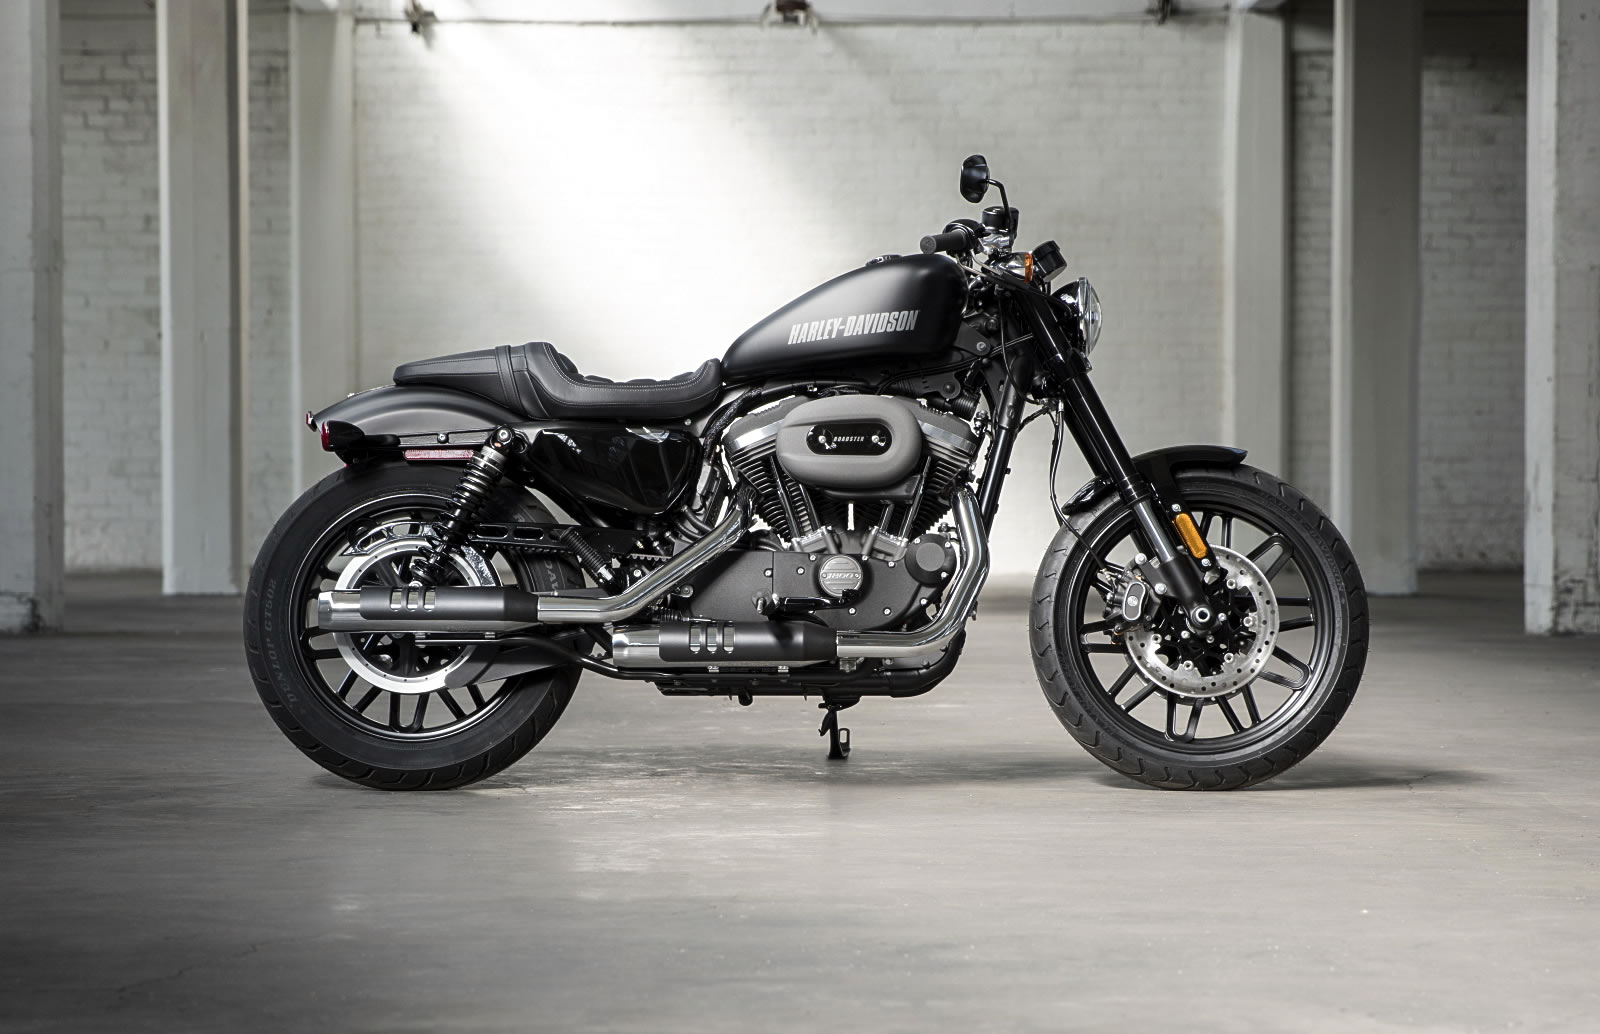 2016 Harley Davidson Sportster Roadster Indicates a Shift in Thinking